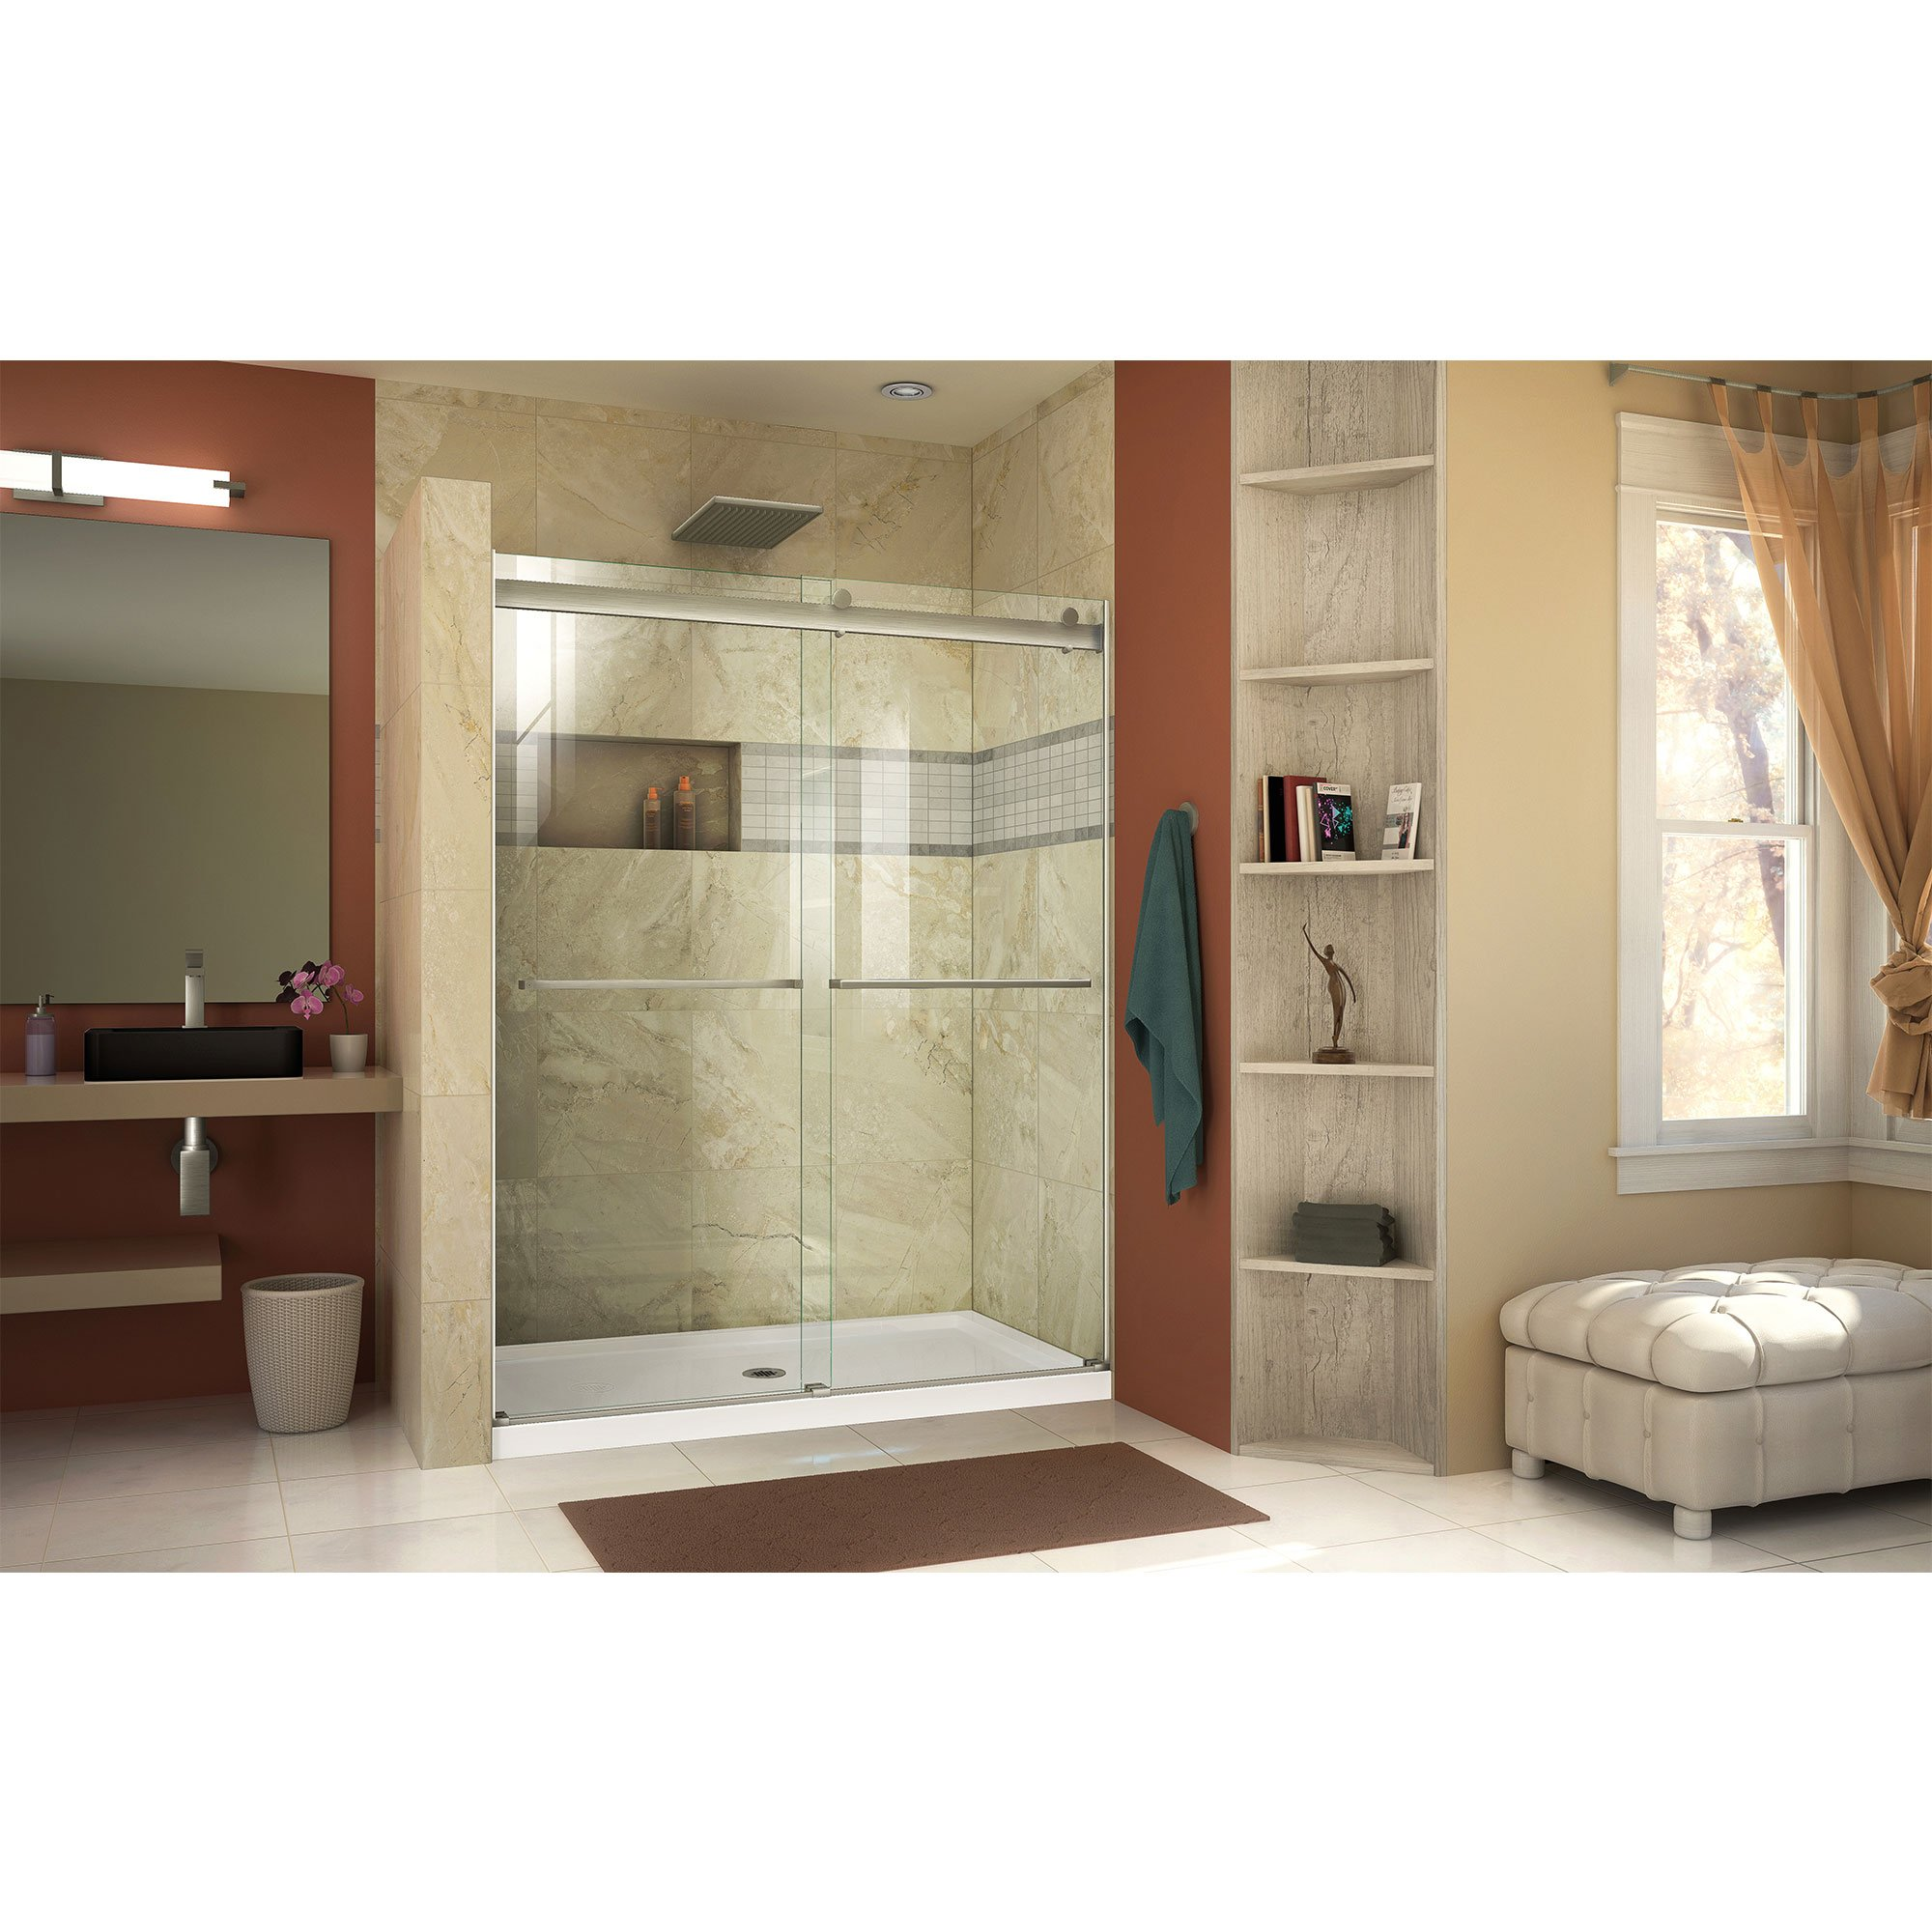 DreamLine SHDR-6360760-04  Essence 56 to 60 in. Frameless Bypass Shower Door in Brushed Nickel Finish by DreamLine (Image #3)